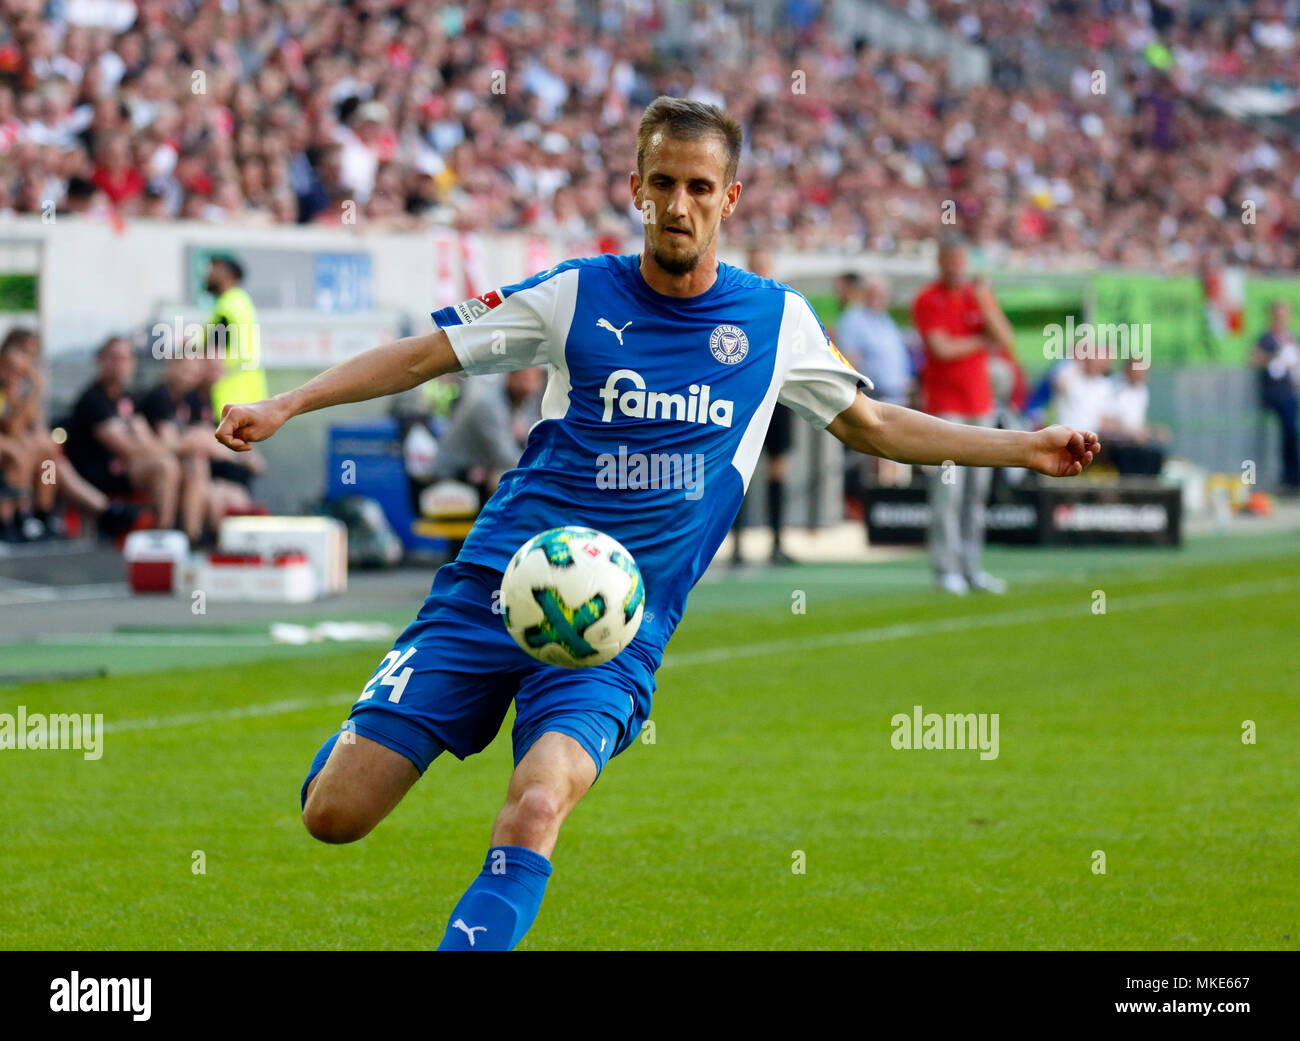 sports,football,2. Bundesliga,2017/2018,Fortuna Duesseldorf vs Holstein Kiel 1:1,Esprit arena Duesseldorf,scene of the match,Dominick Drexler (Kiel) in ball possession - Stock Image